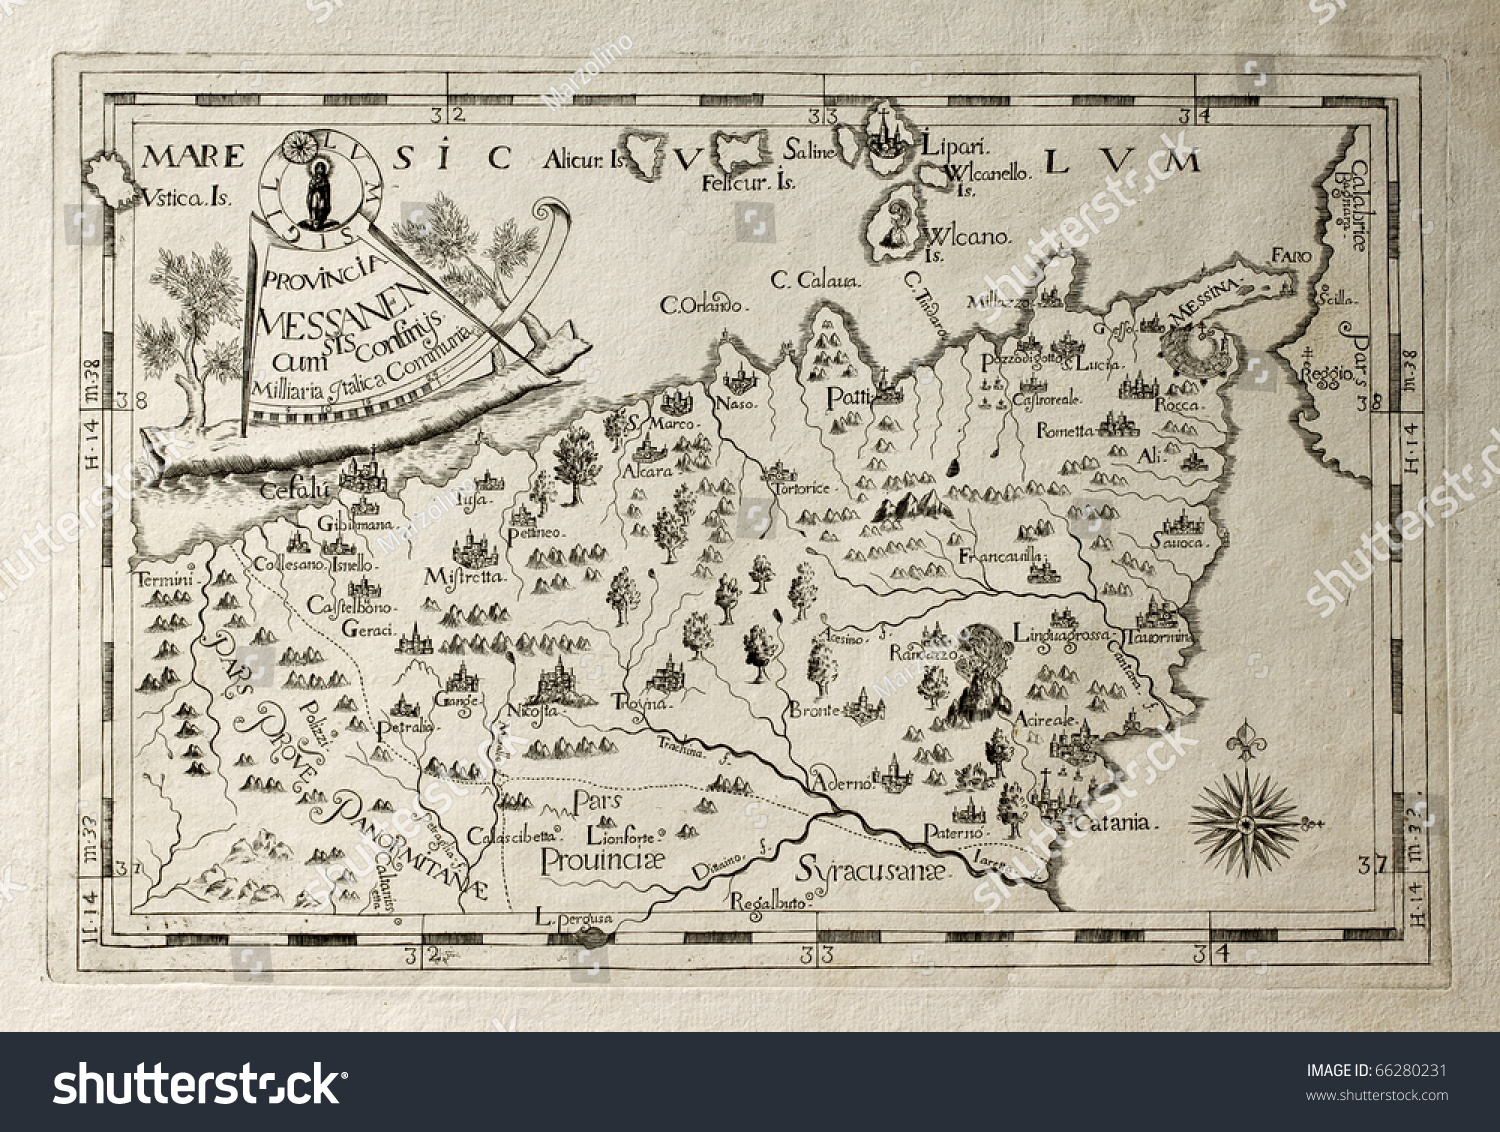 Old Map Capuchins Province Messina Sicily Stock Photo 66280231